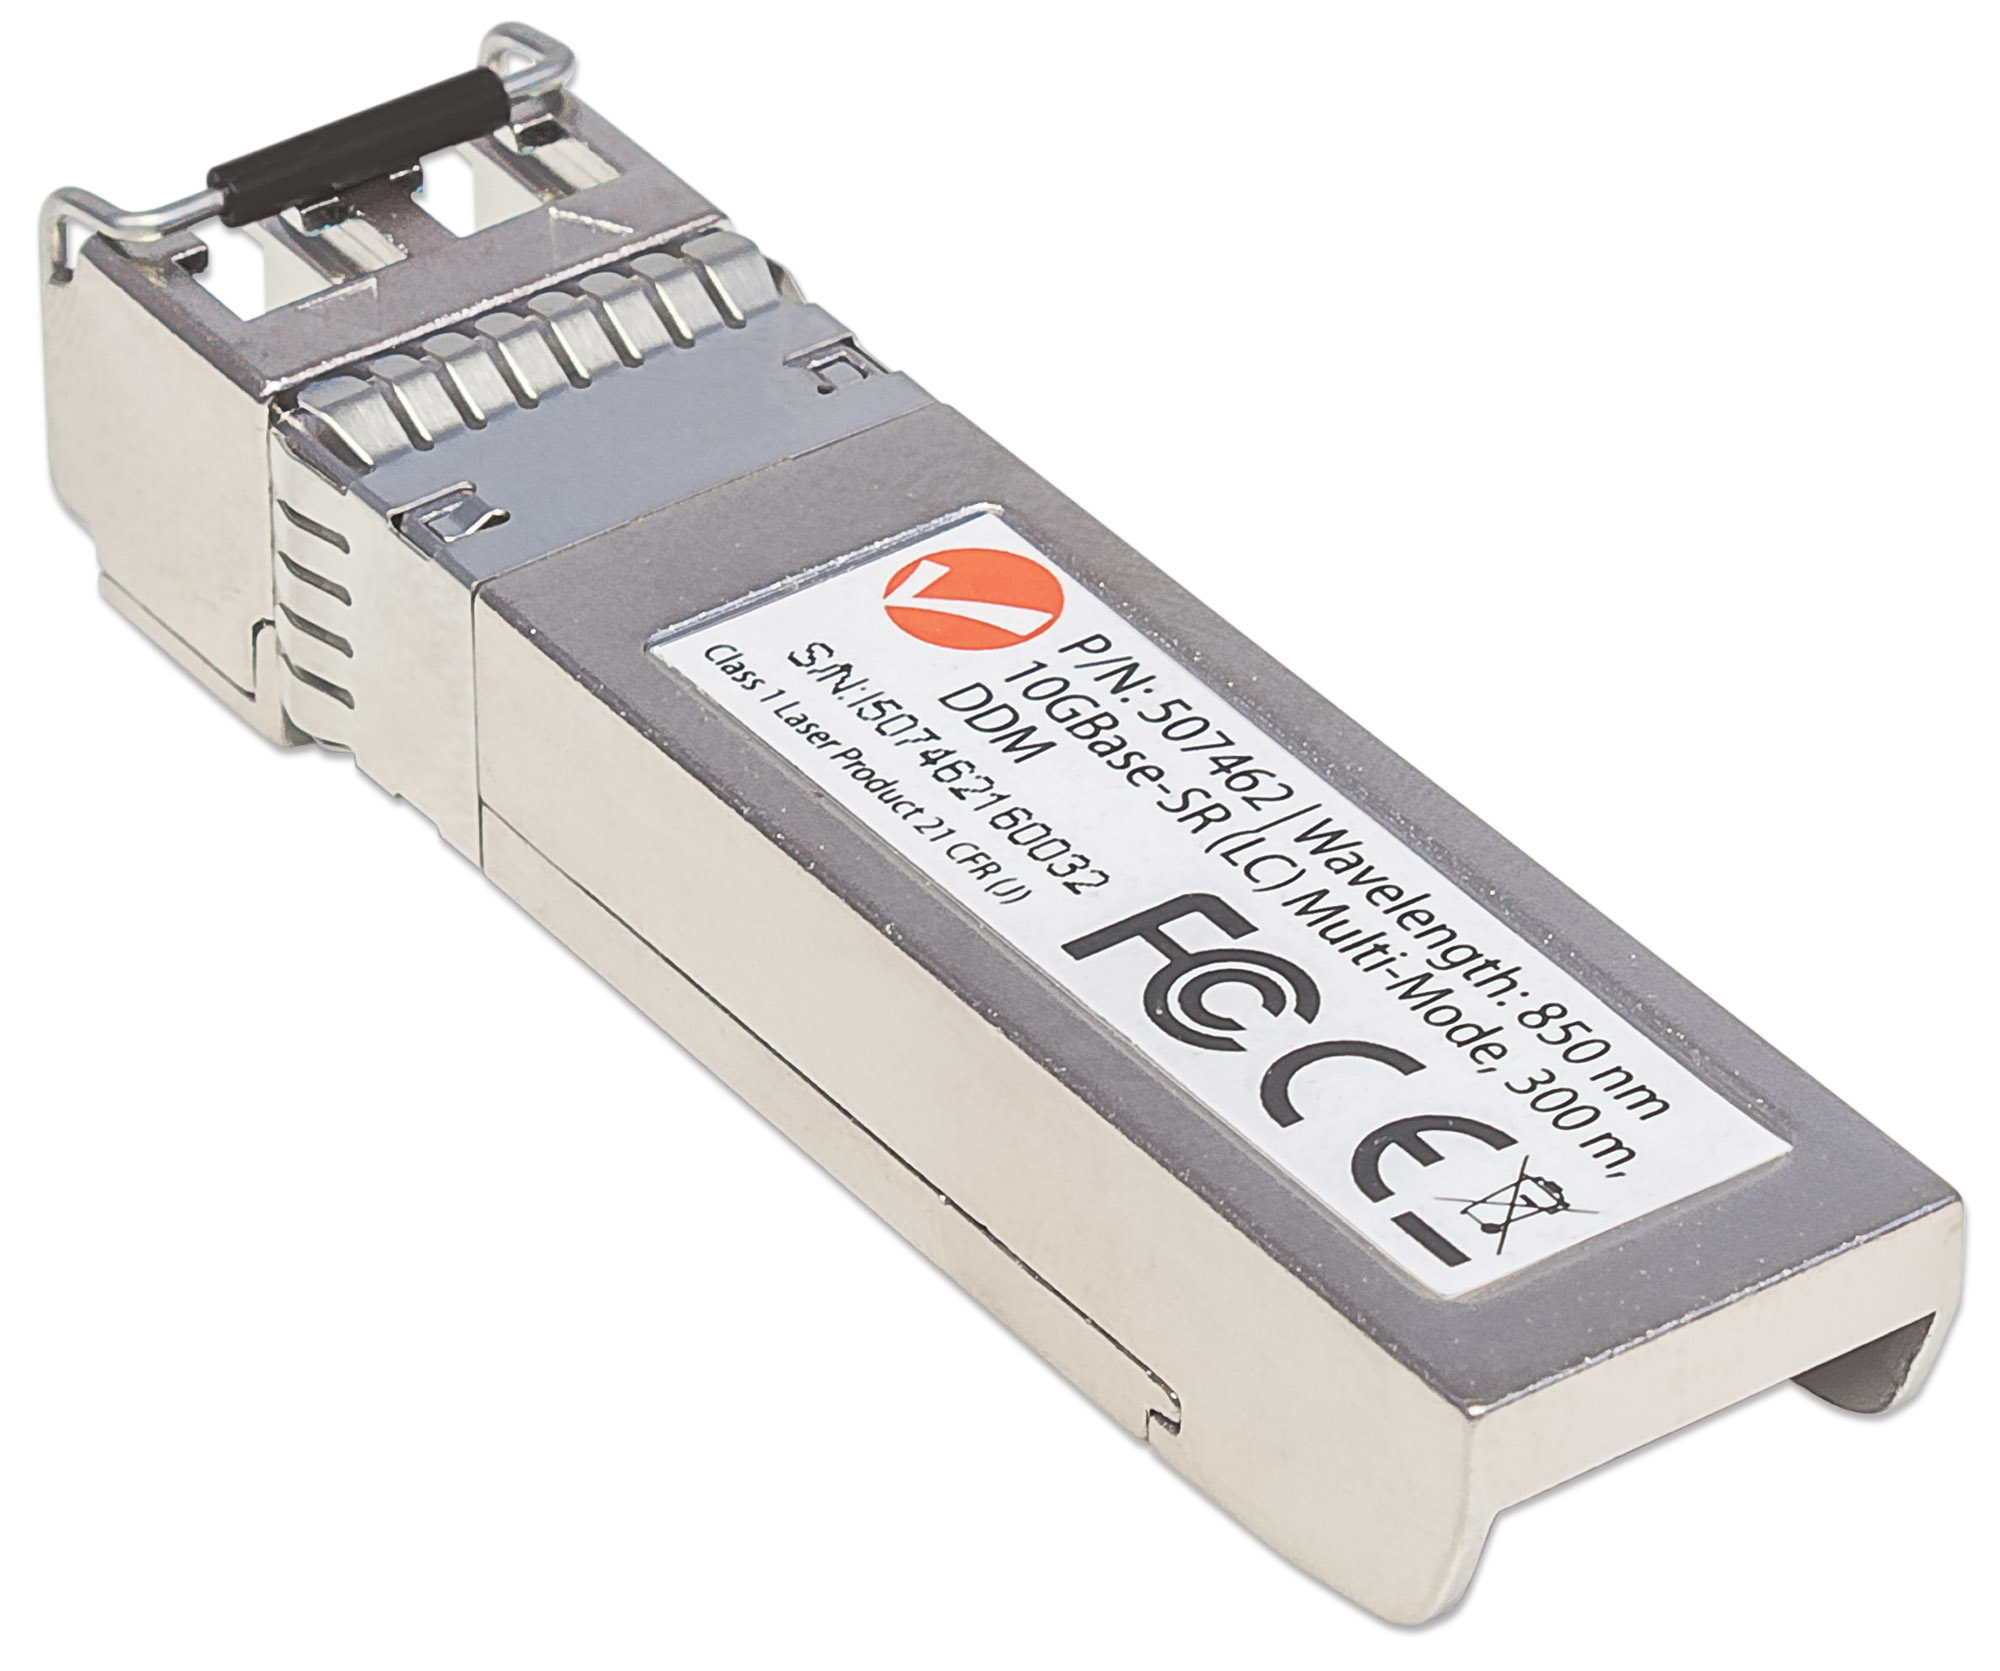 10 Gigabit Fiber SFP+ Optical Transceiver Module